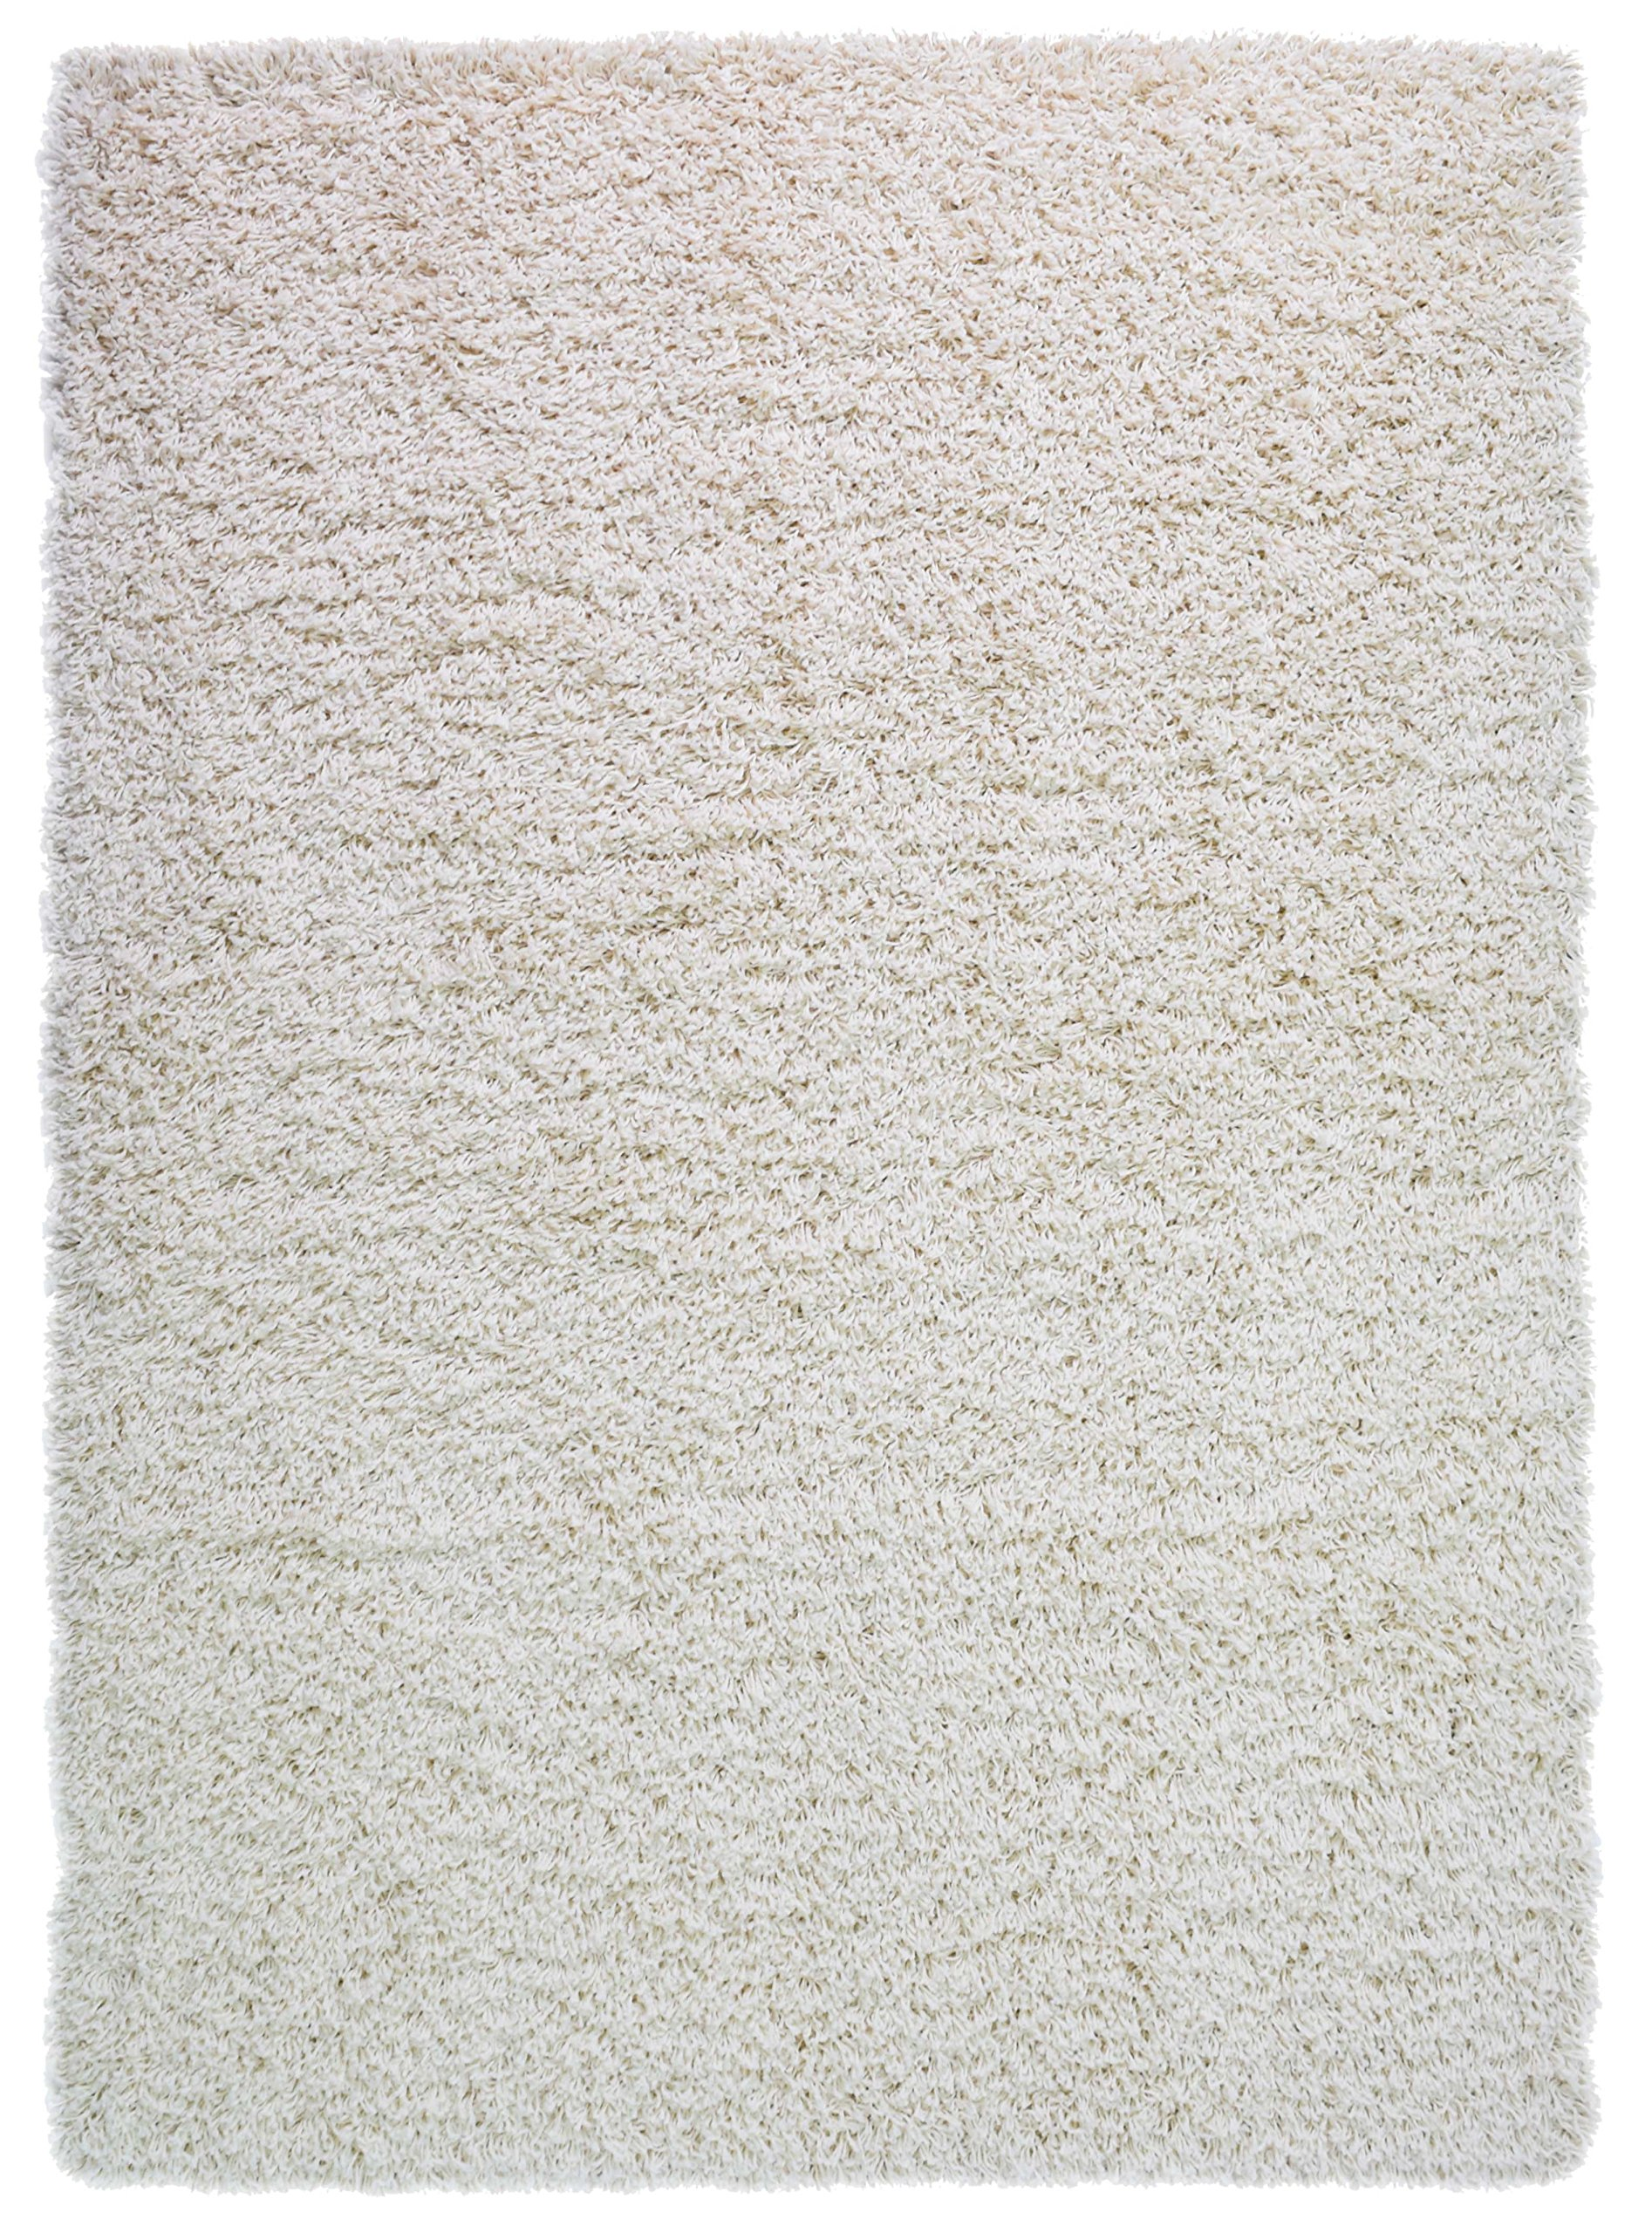 Small rug 5cm thick shag pile soft shaggy area rugs modern for Soft area rugs